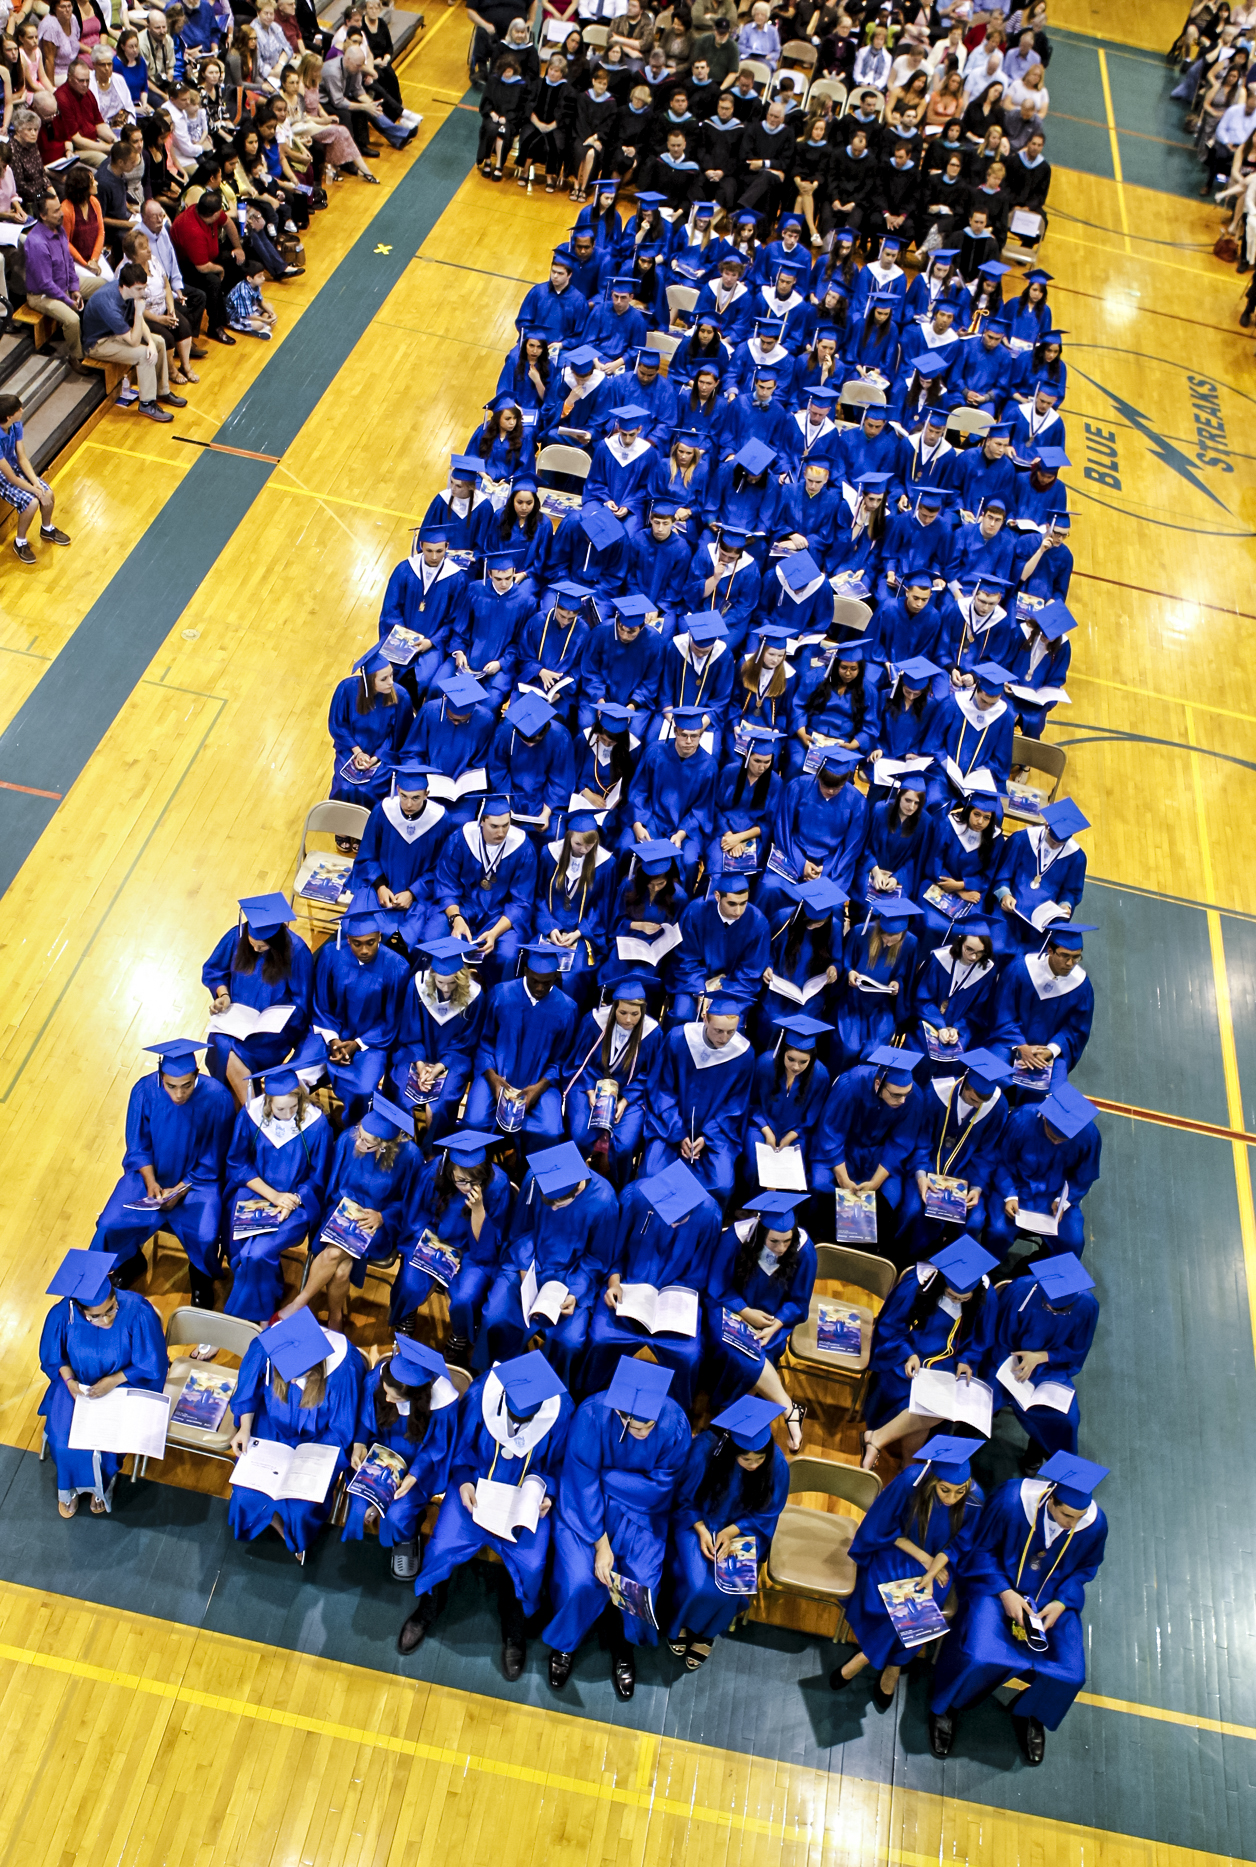 graduation-event-photographer-madison-wi-dane-county-ruthie-hauge-photography-3.jpg